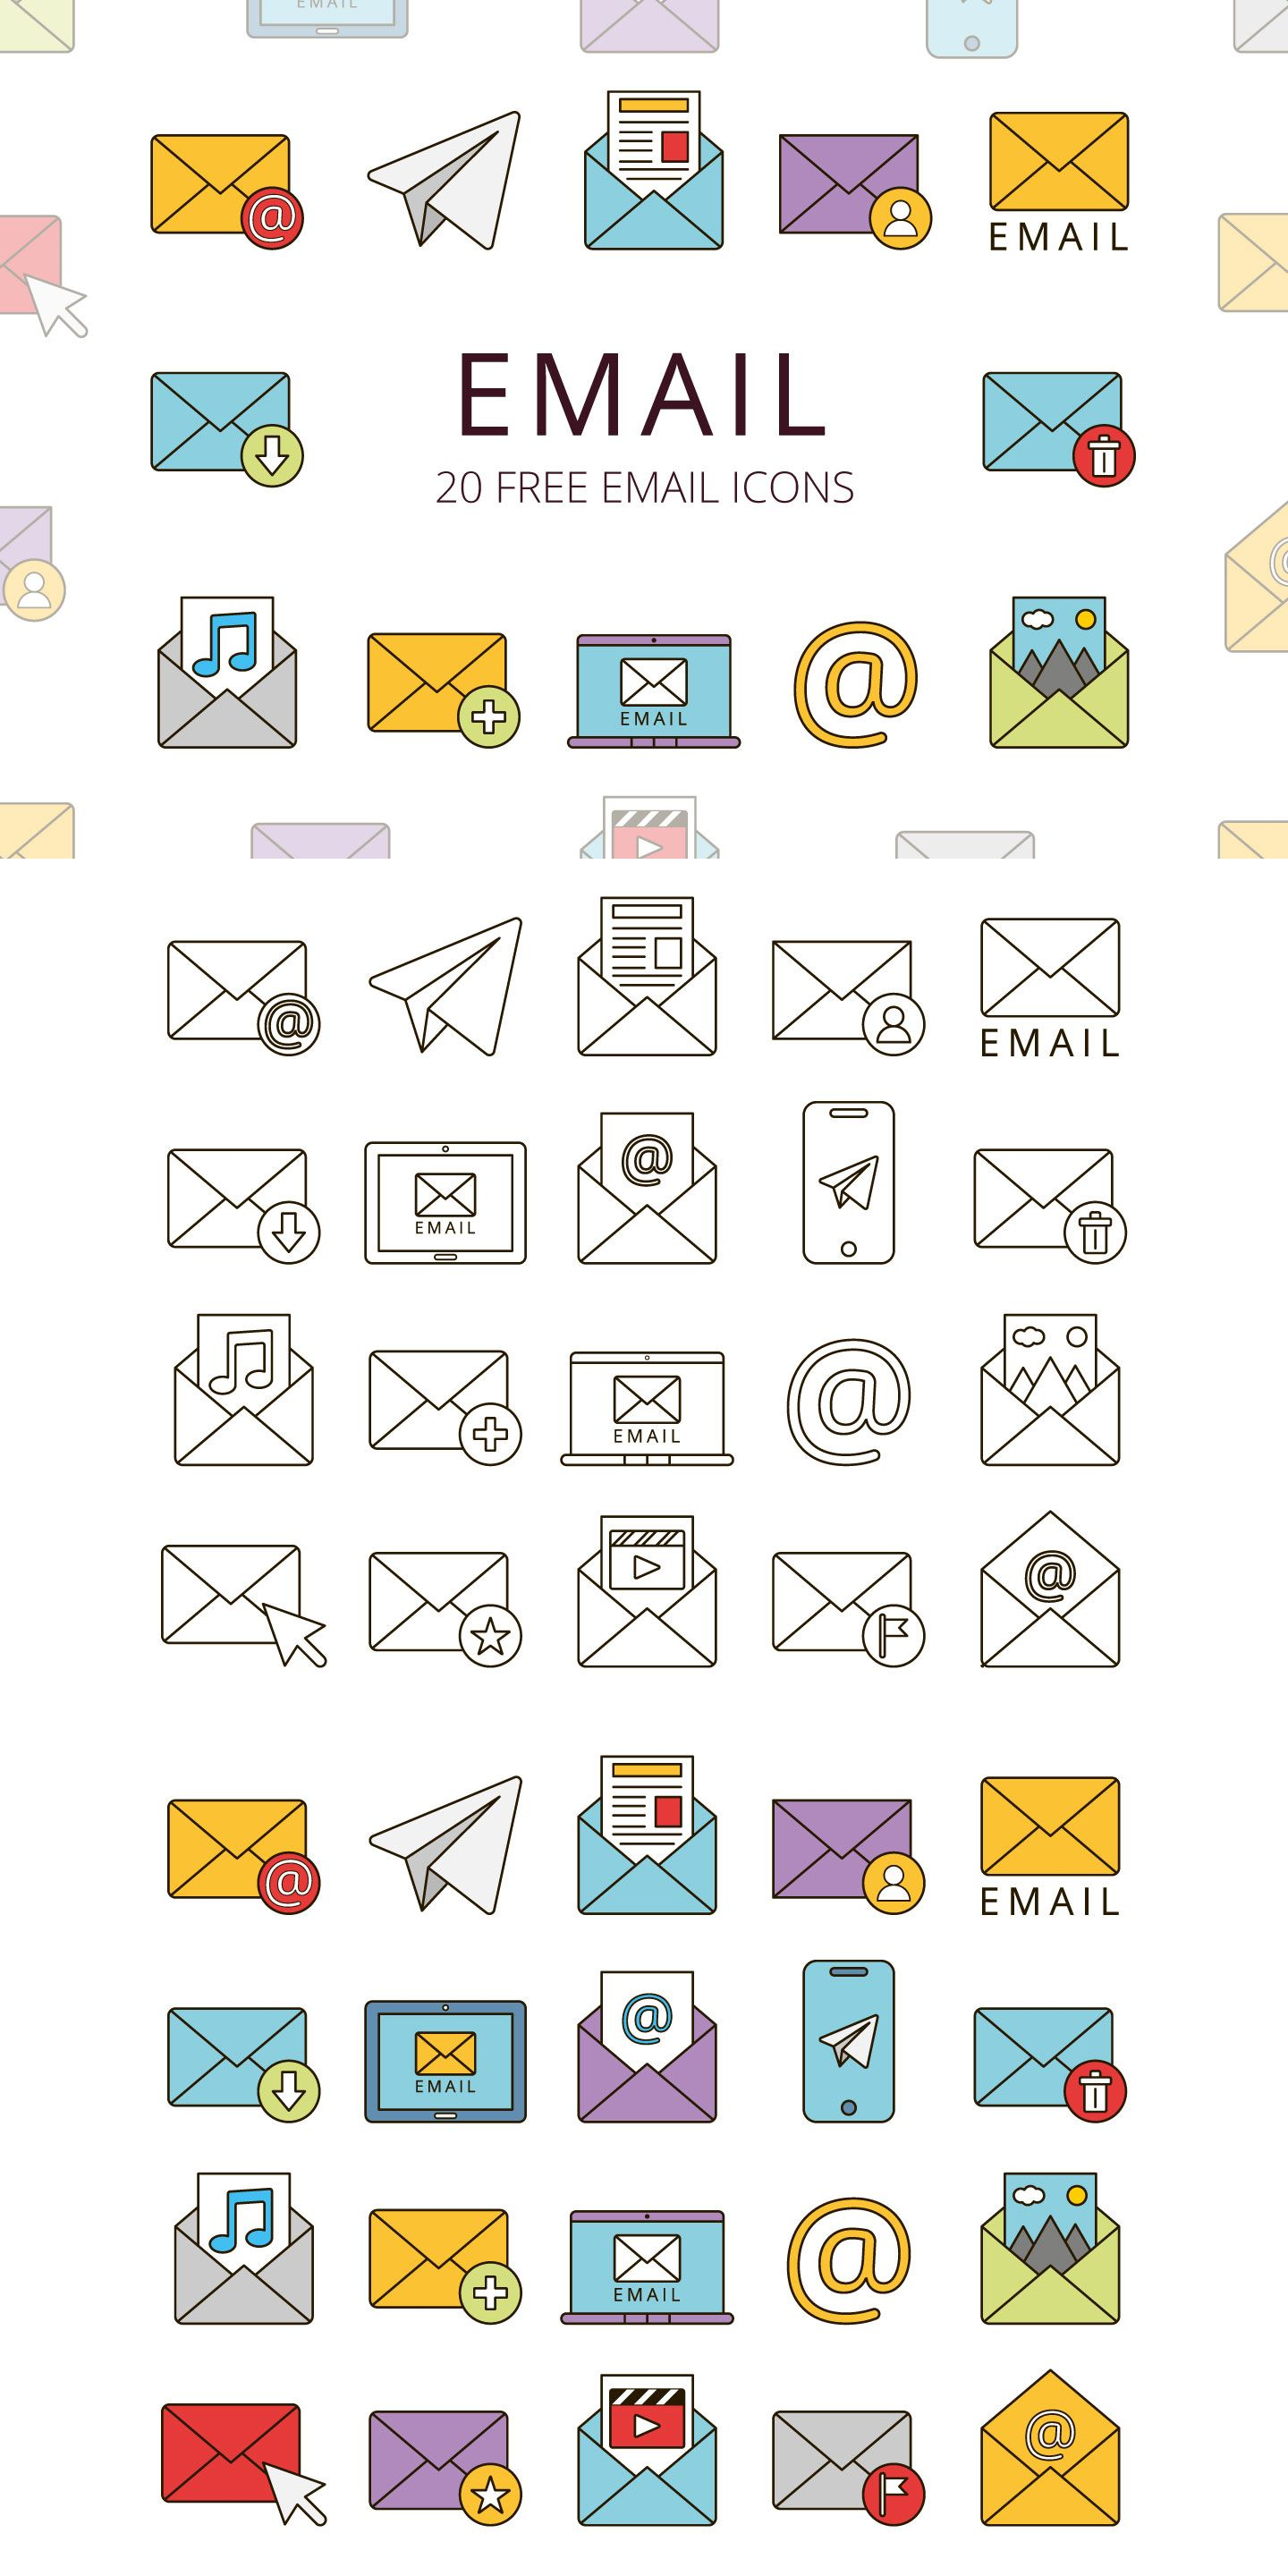 Email Free Vector Icon Set in 2020 Email icon, Icon set